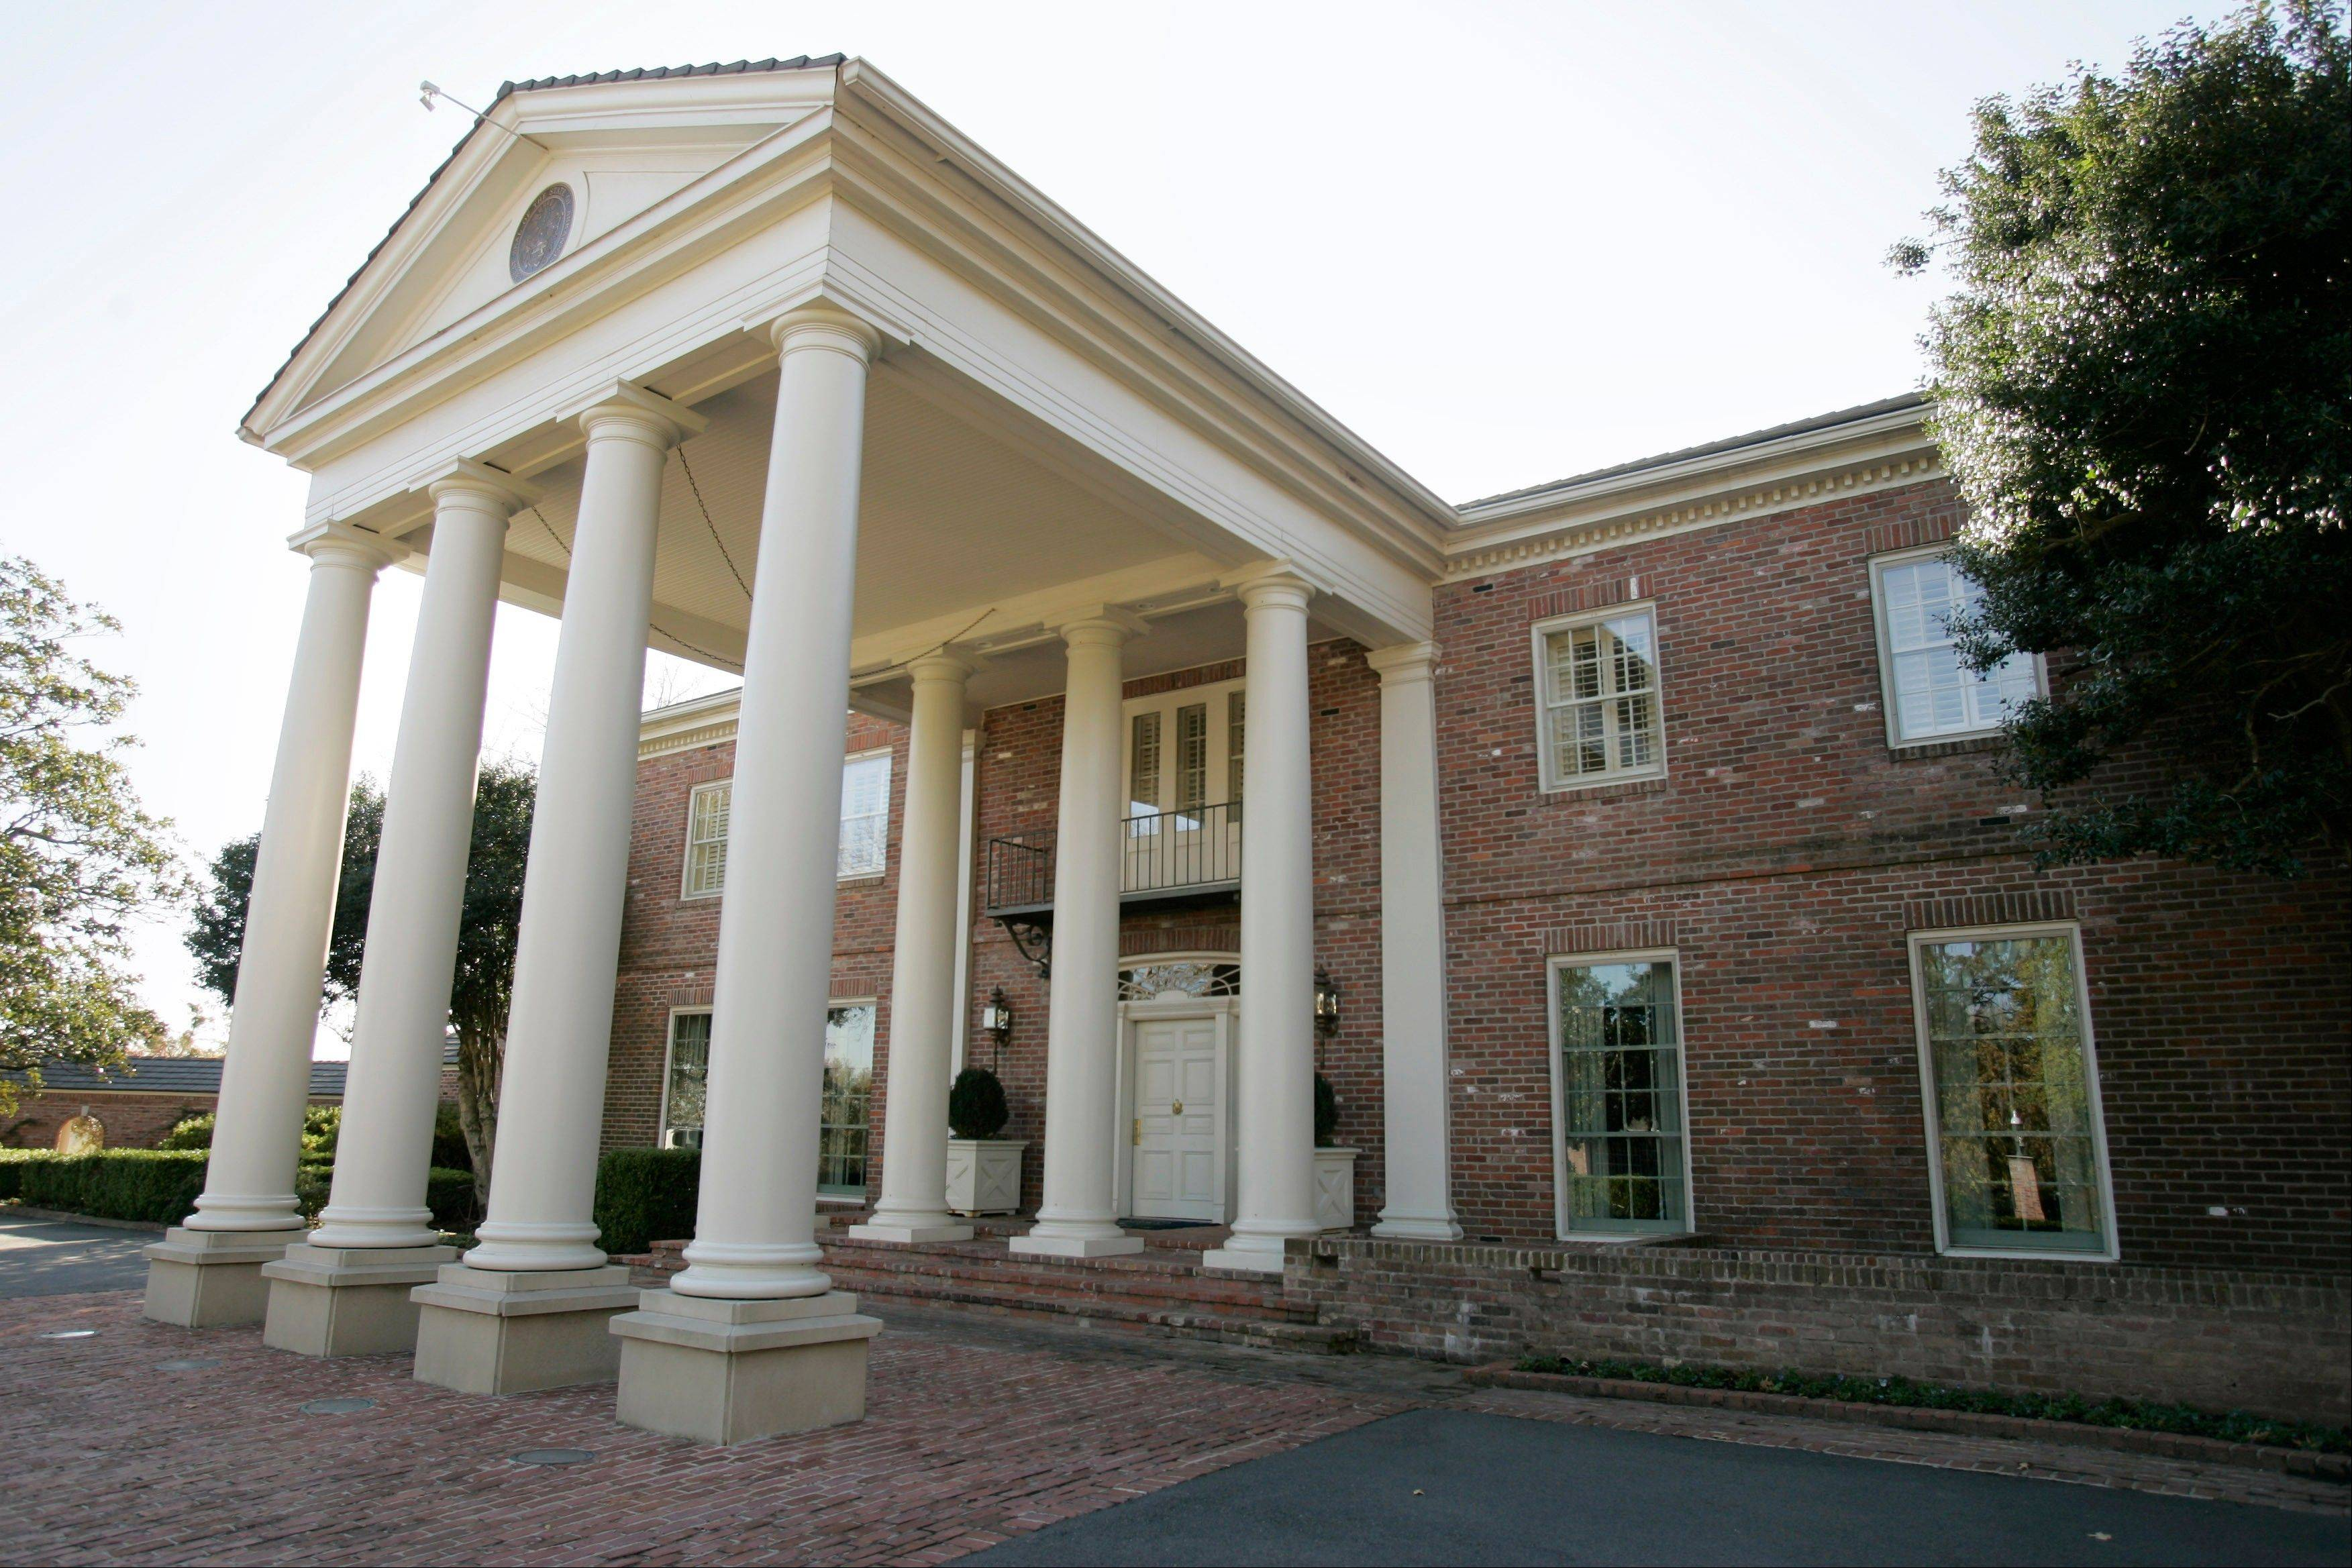 The Arkansas Governor's Mansion, where Bill and Hillary Clinton lived before he became president, offers free tours by reservation.